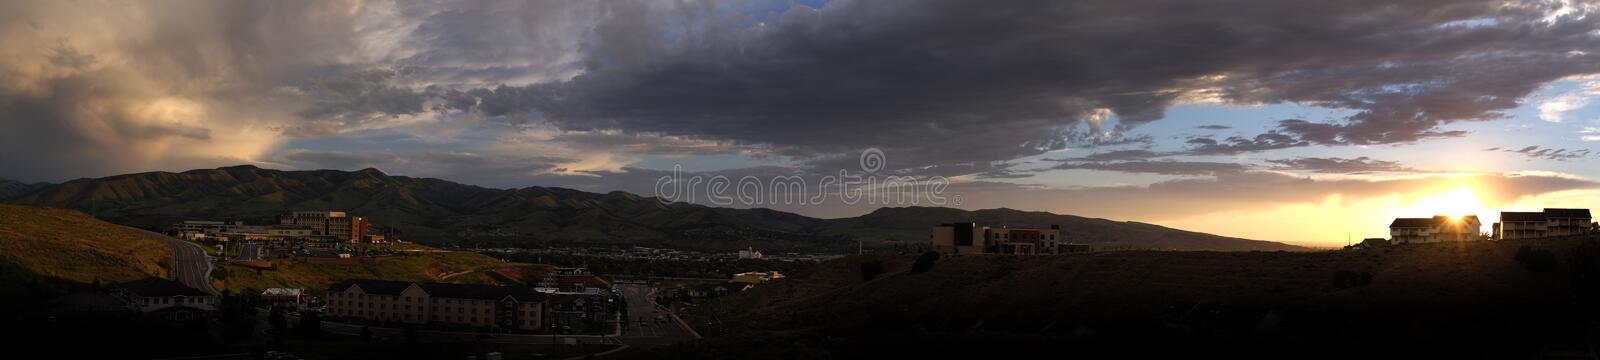 Panormaic of Pocatello Idaho at Sunset stock photography